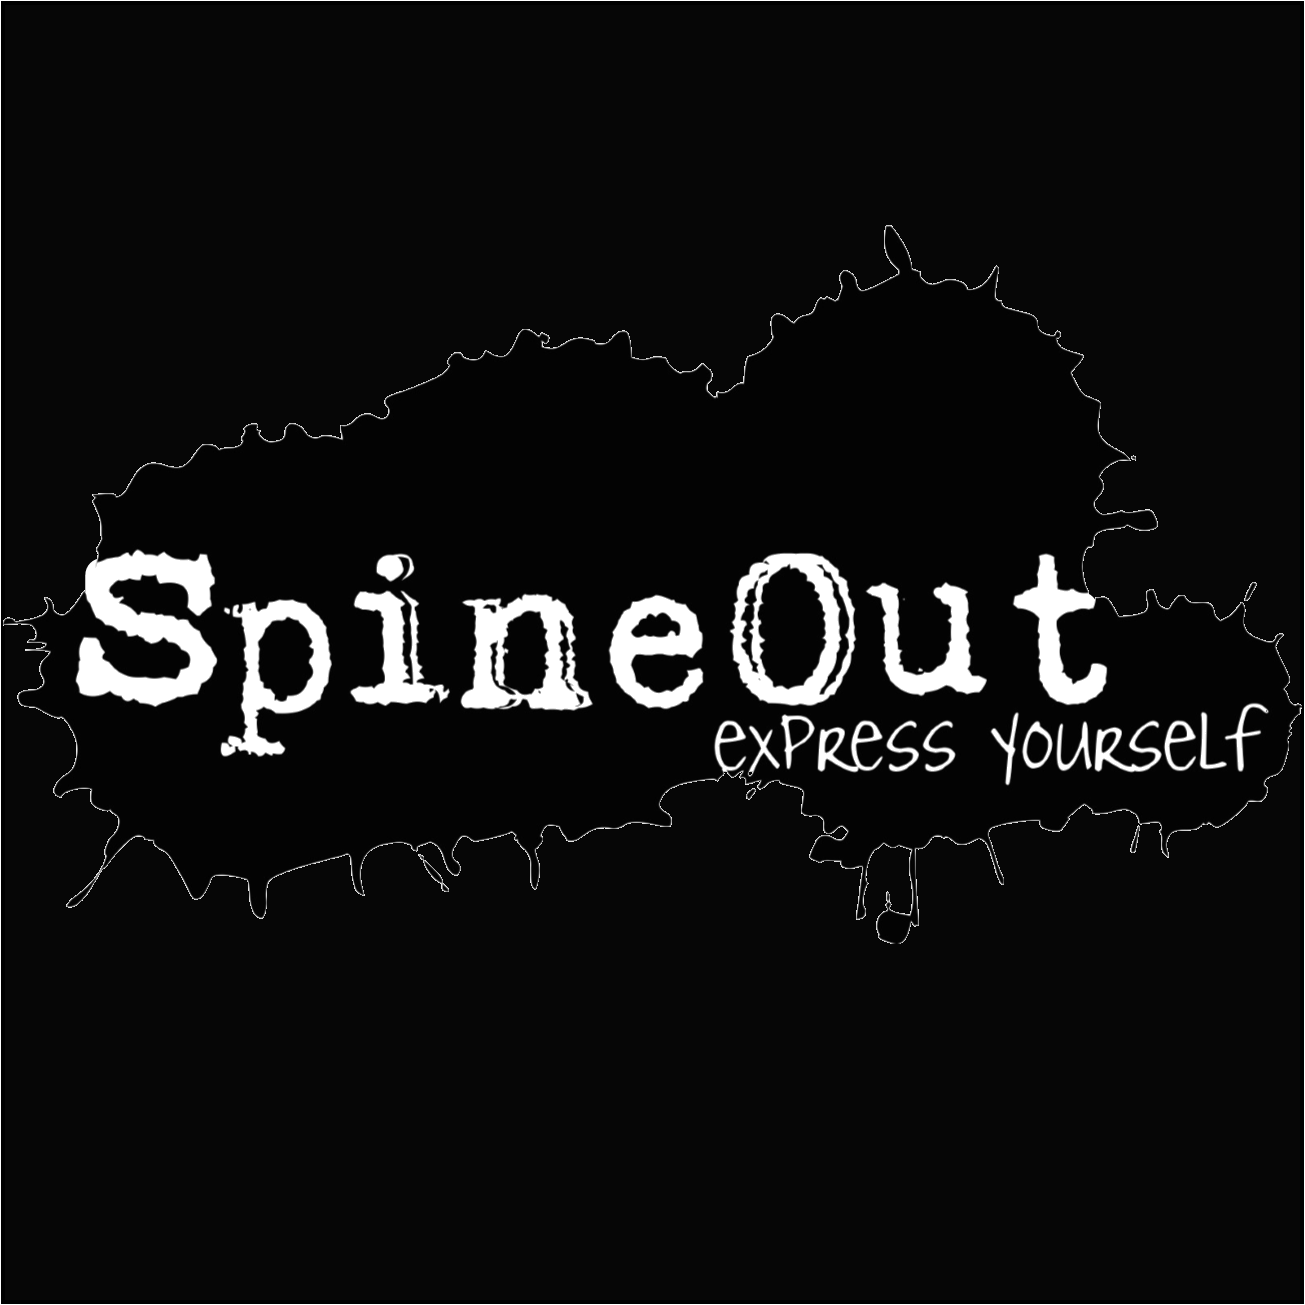 SpineOut thumbnail image.